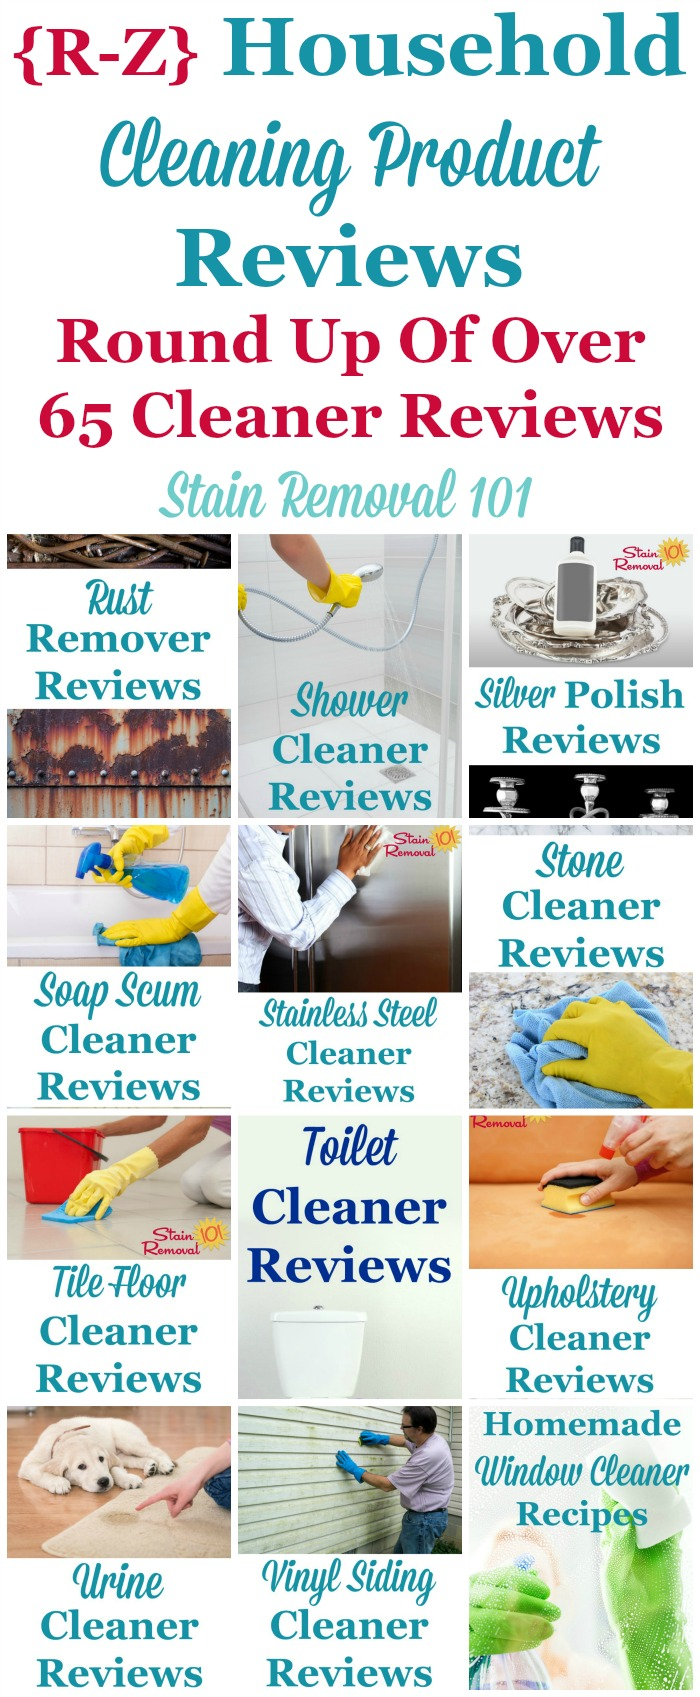 Household Cleaning Products Reviews RZ Cleaners